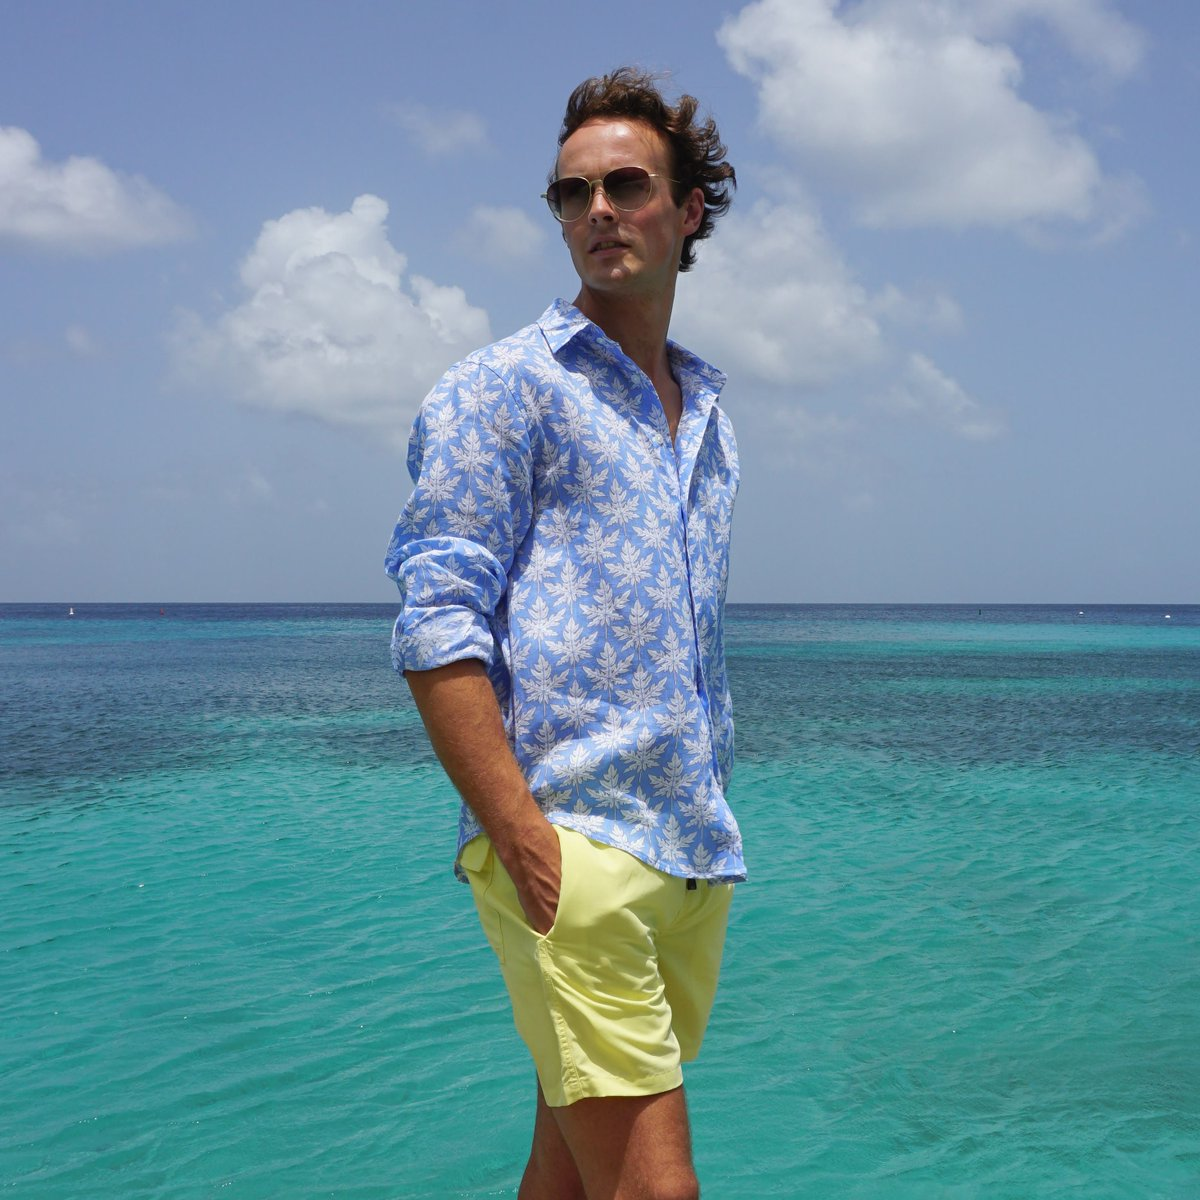 b409c50083 True to #Mustique style, our men's linen shirt in papaya leaf print is one  of our bestsellers. Shop now: https://bit.ly/2FDtWxU #pinkhousemustique ...